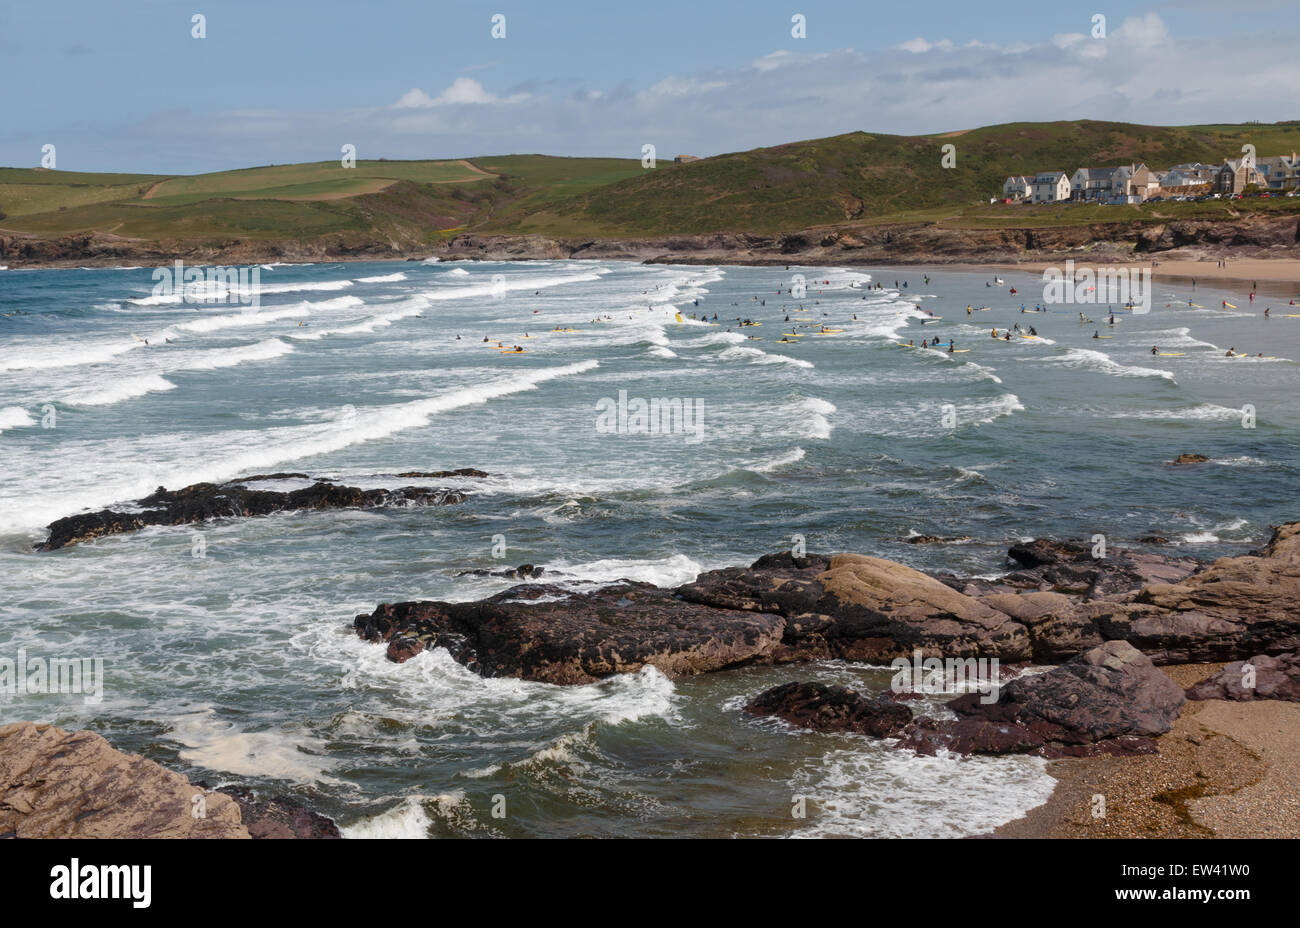 Polzeath with its atlantic waves is one of the top surfing beaches in the UK - Stock Image